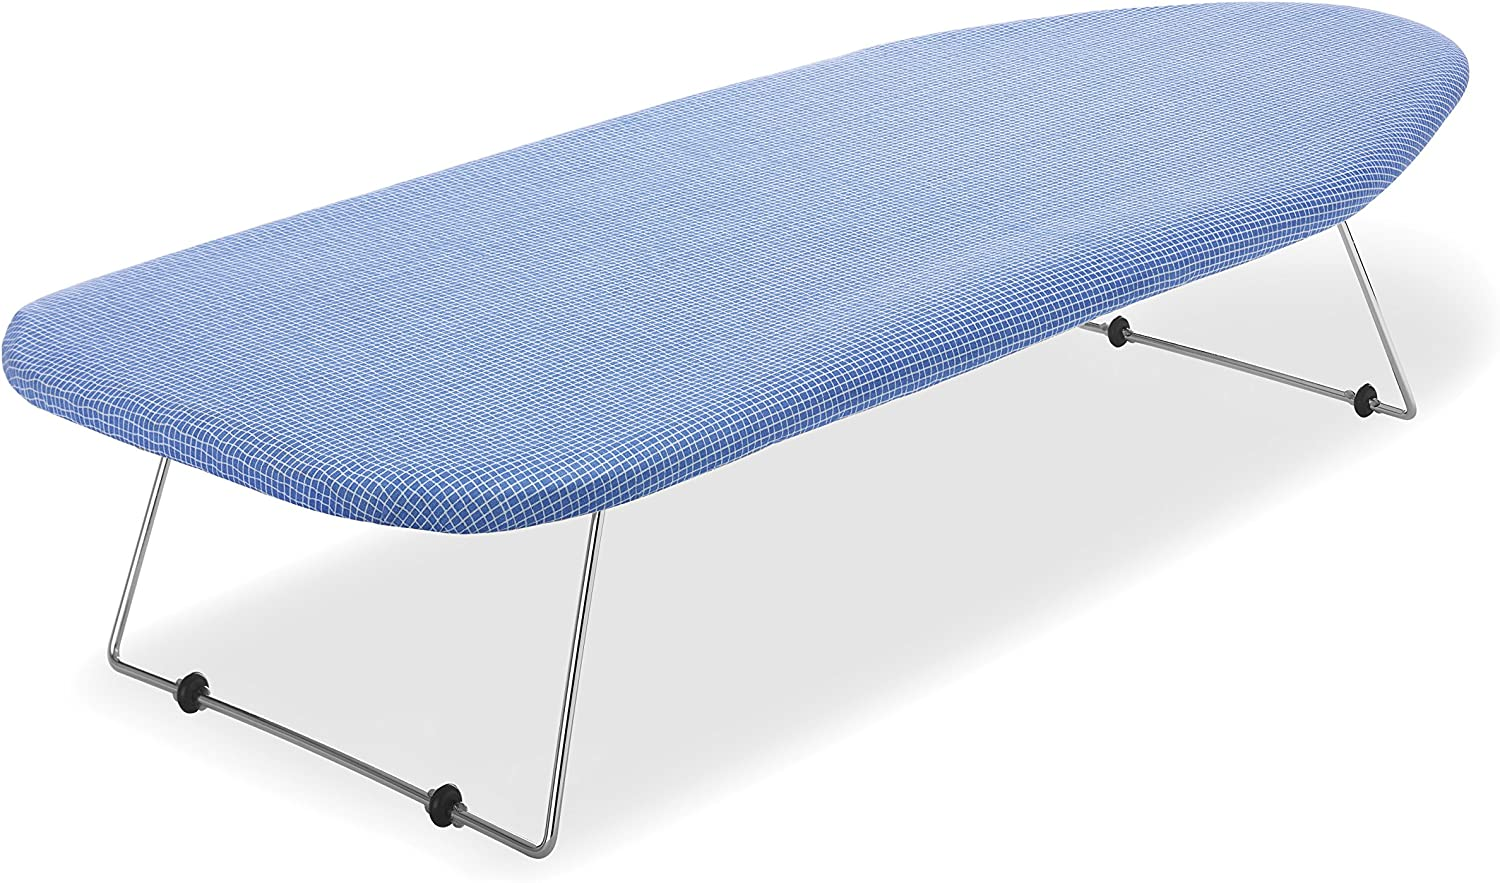 Whitmor Tabletop Ironing Board by Whitmor